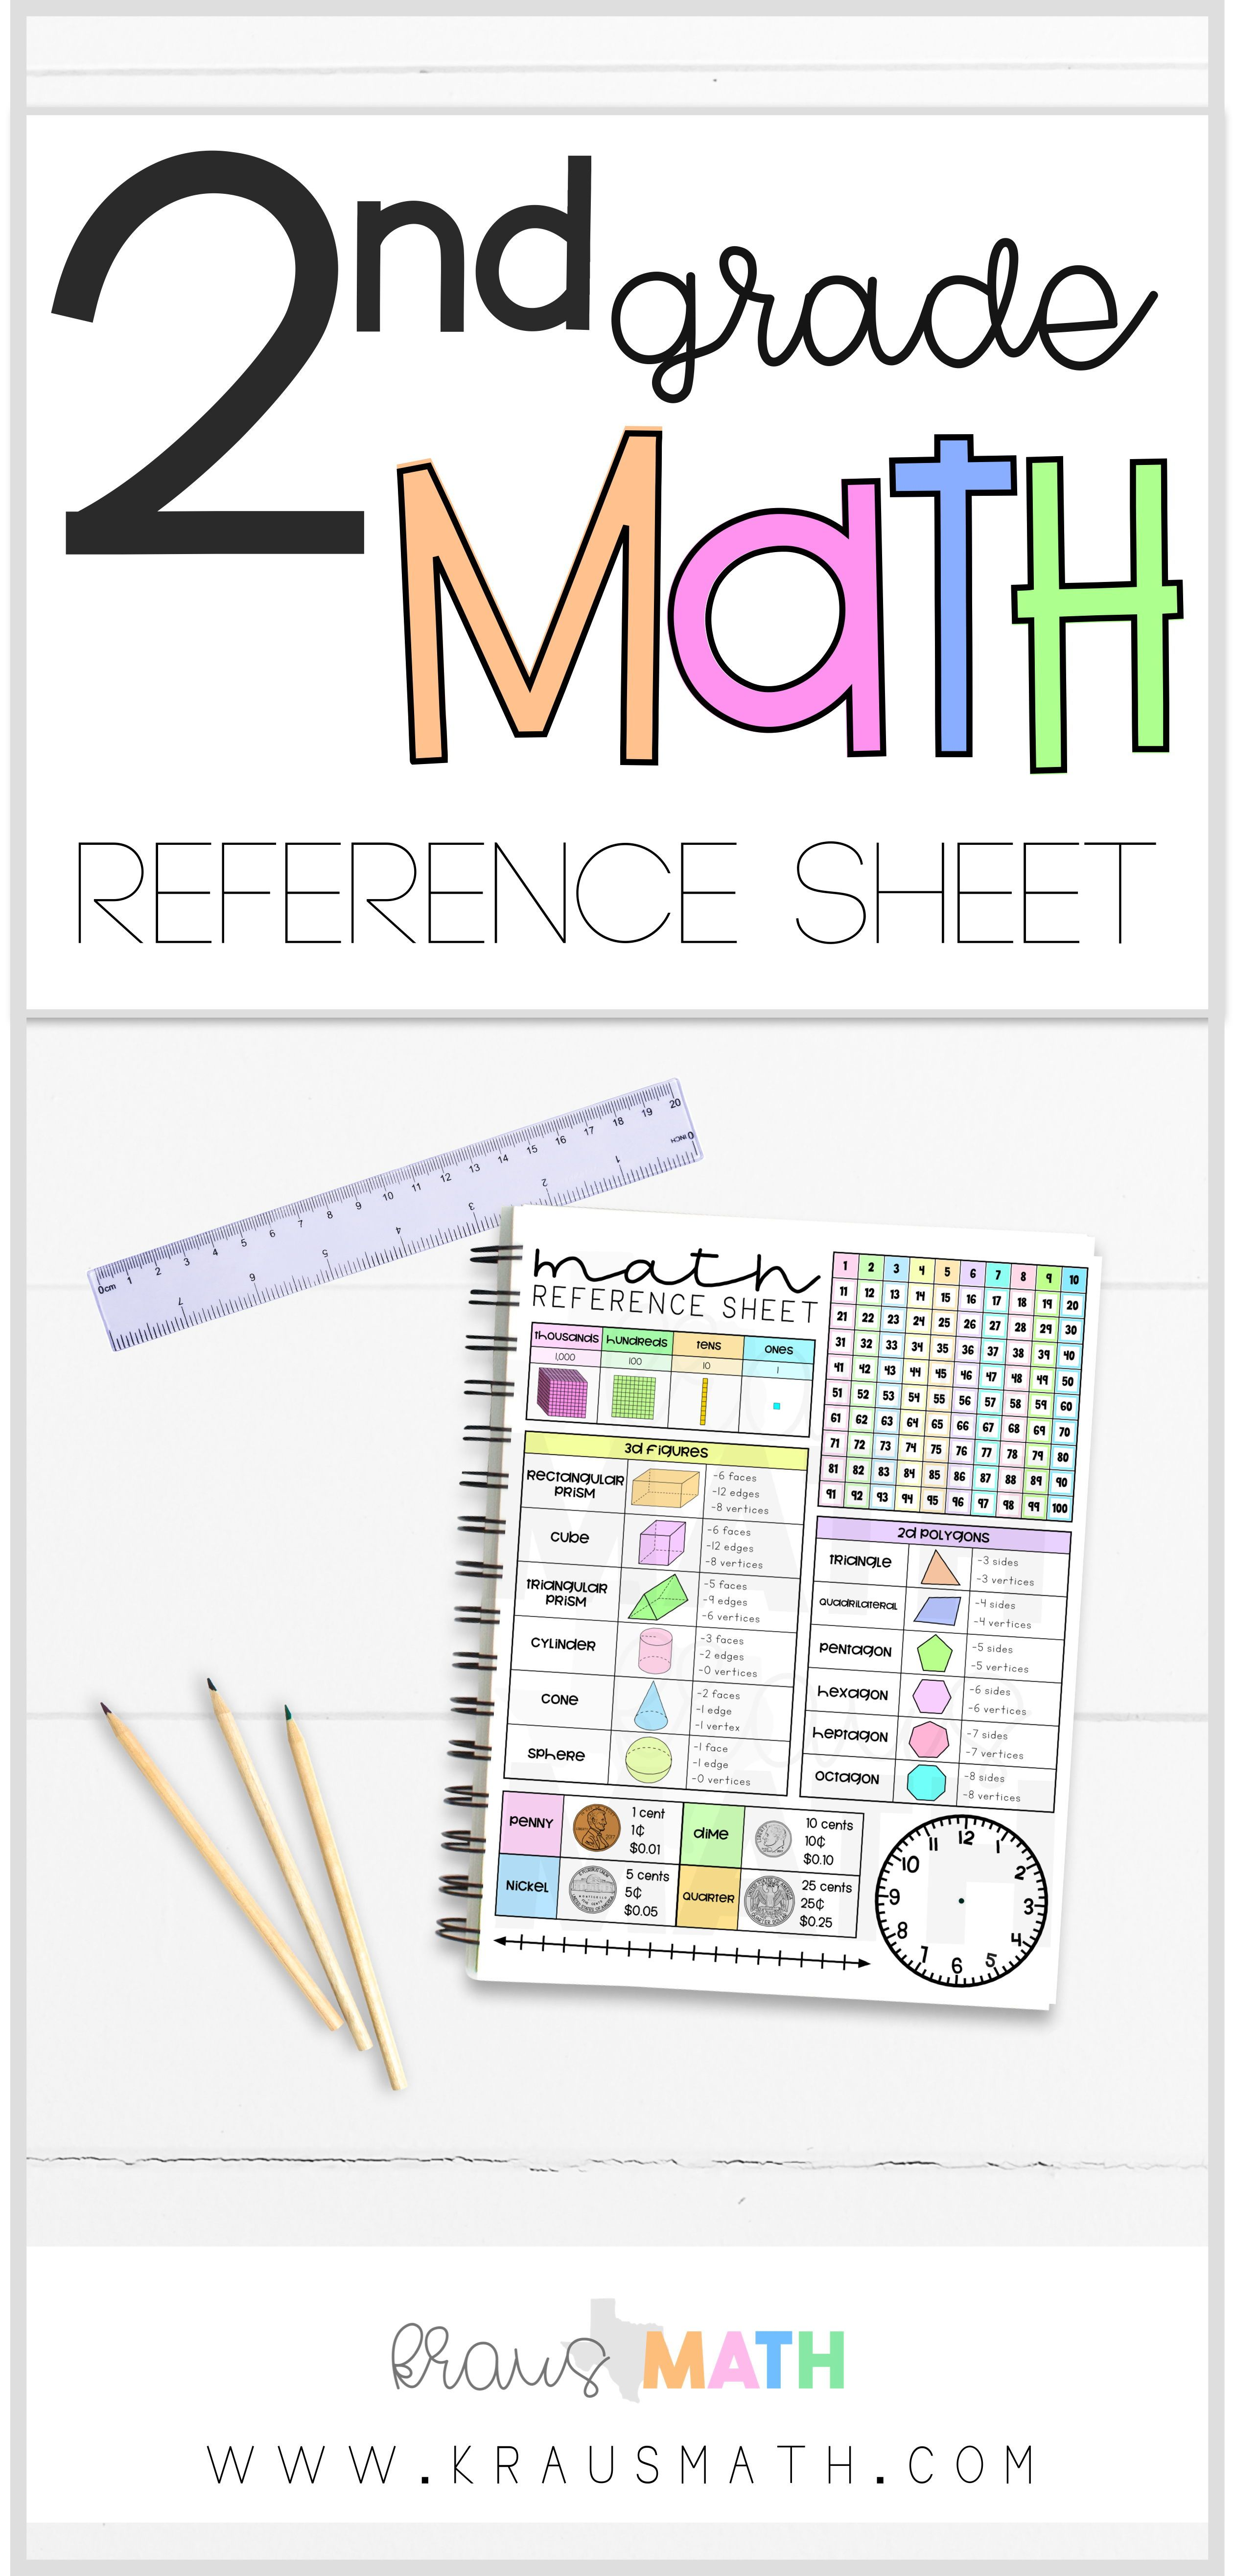 hight resolution of 2nd Grade Math Reference Sheet   Kraus Math   Math reference sheet